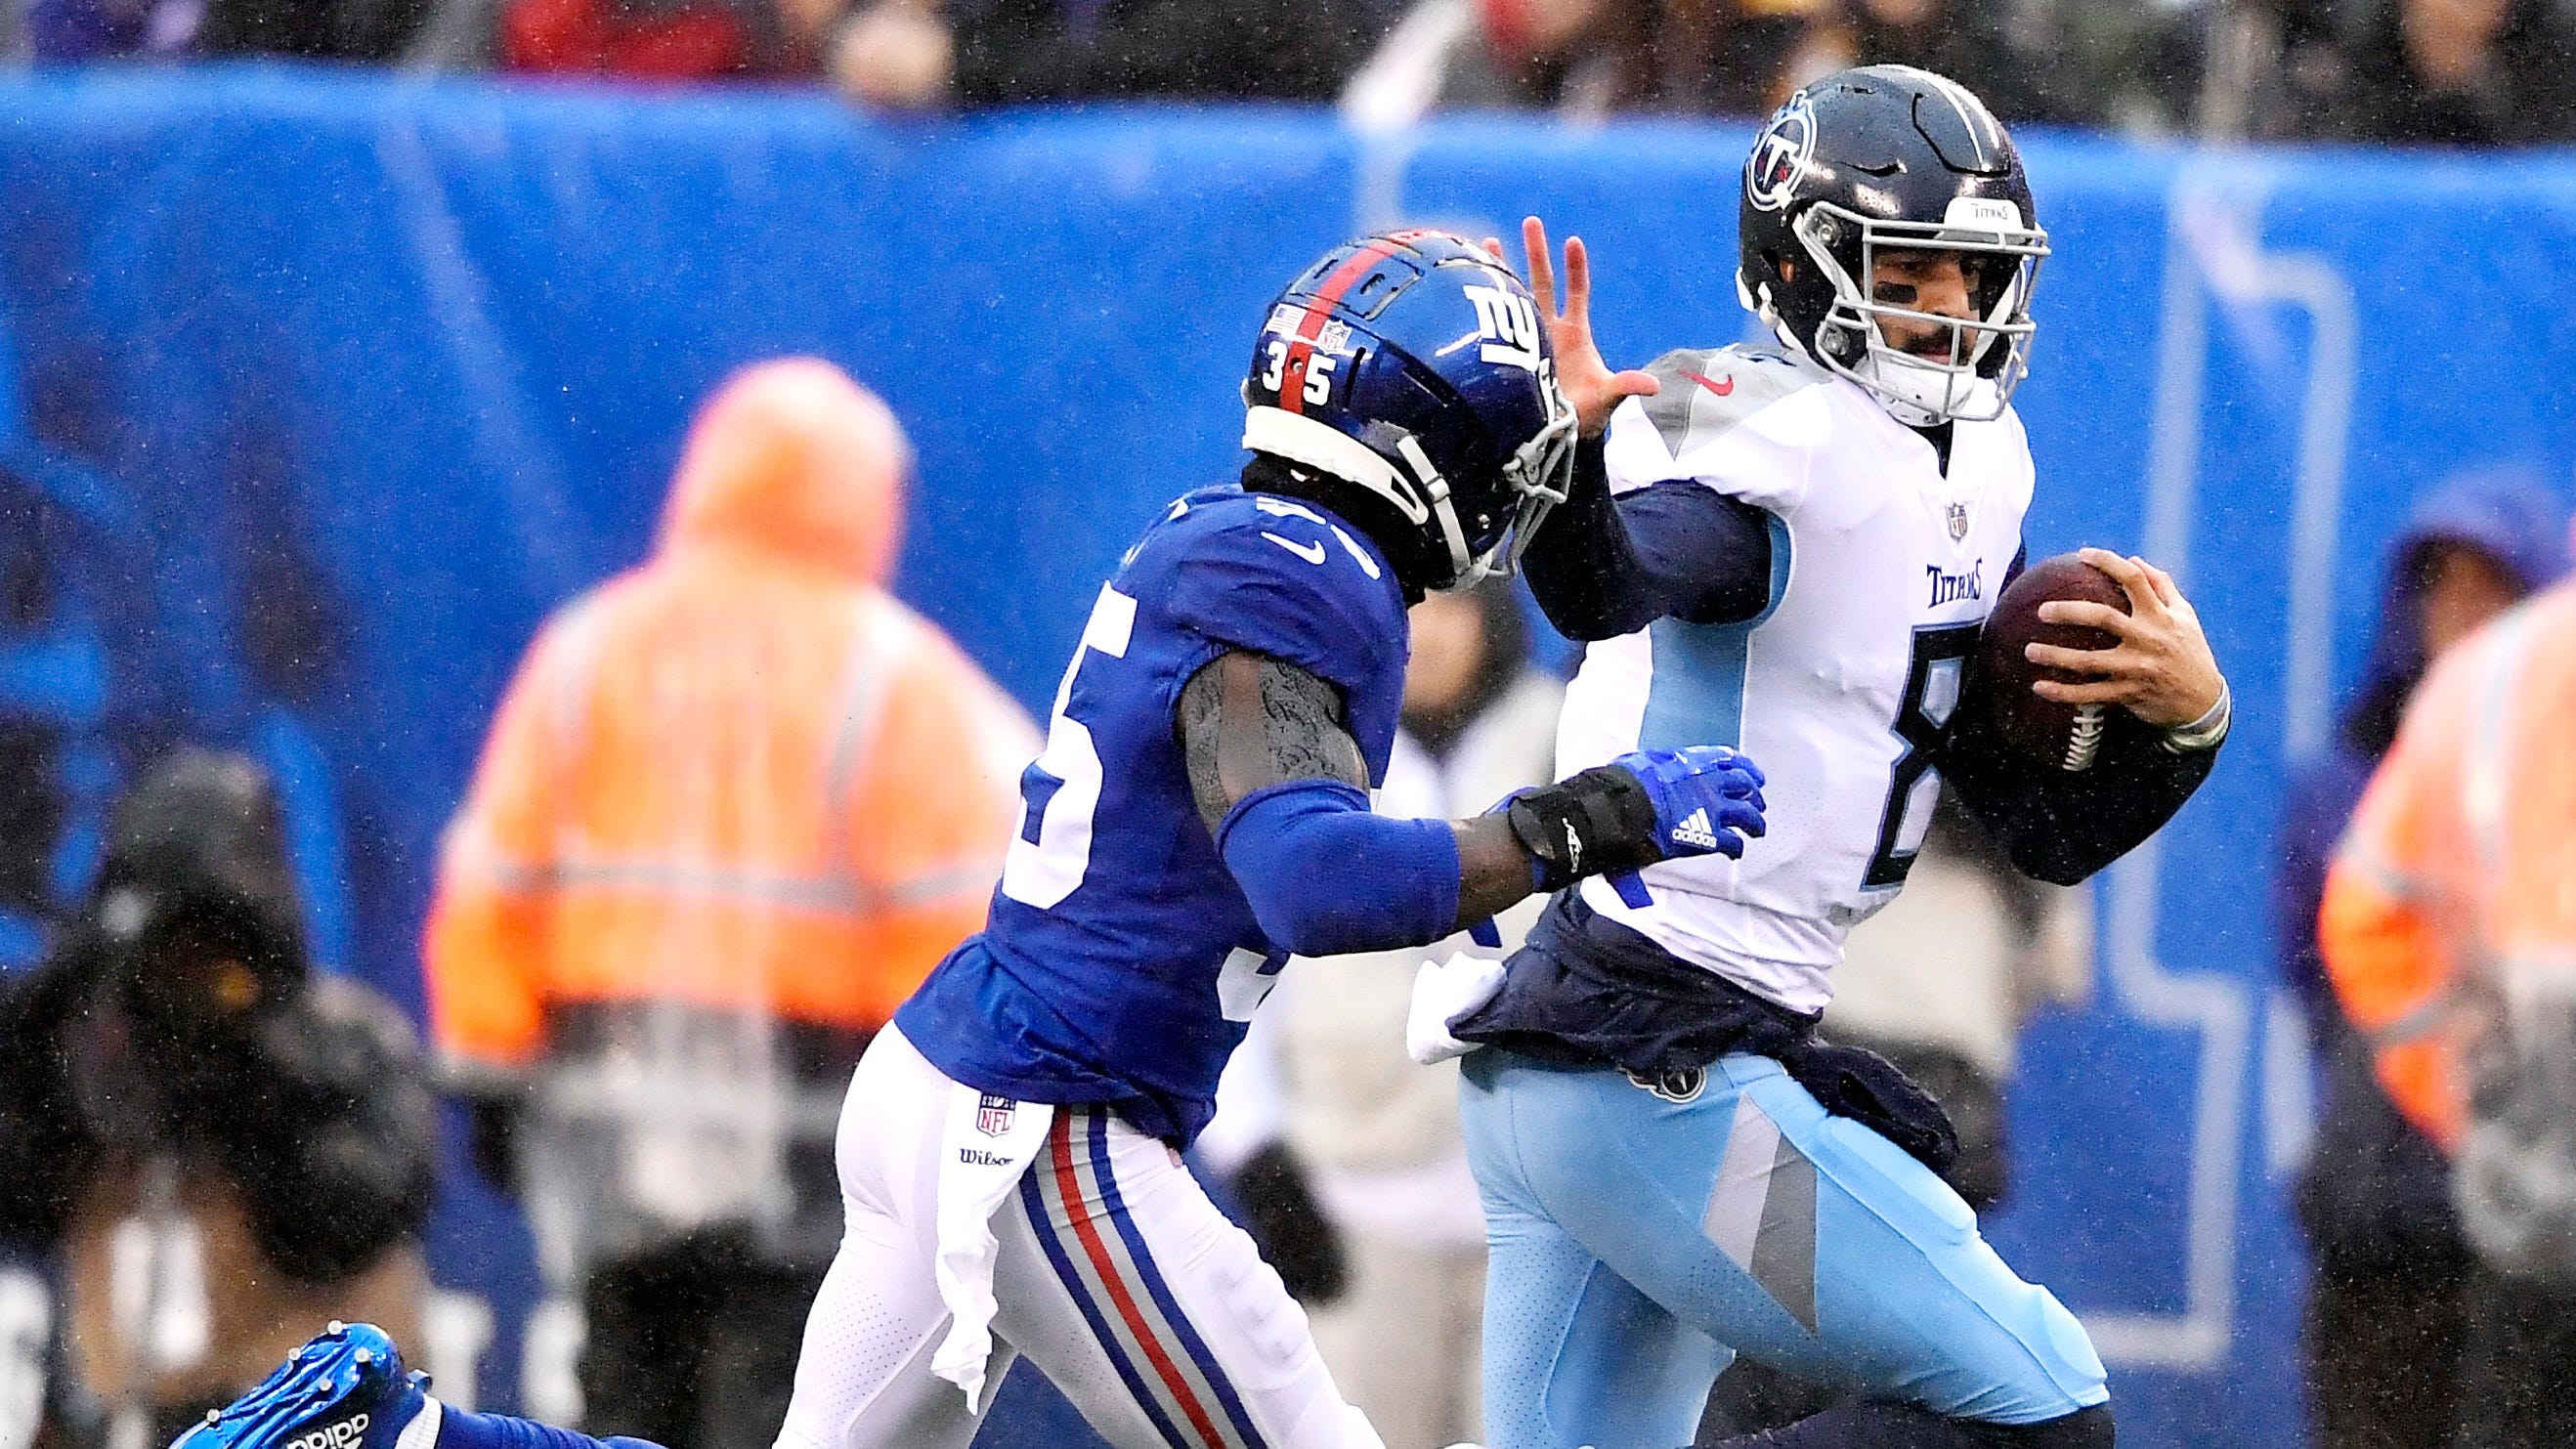 Titans quarterback Marcus Mariota (8) rushes for a first down in the first quarter defended by Giants cornerback Curtis Riley (35) at MetLife Stadium Sunday, Dec. 16, 2018, in East Rutherford, N.J.